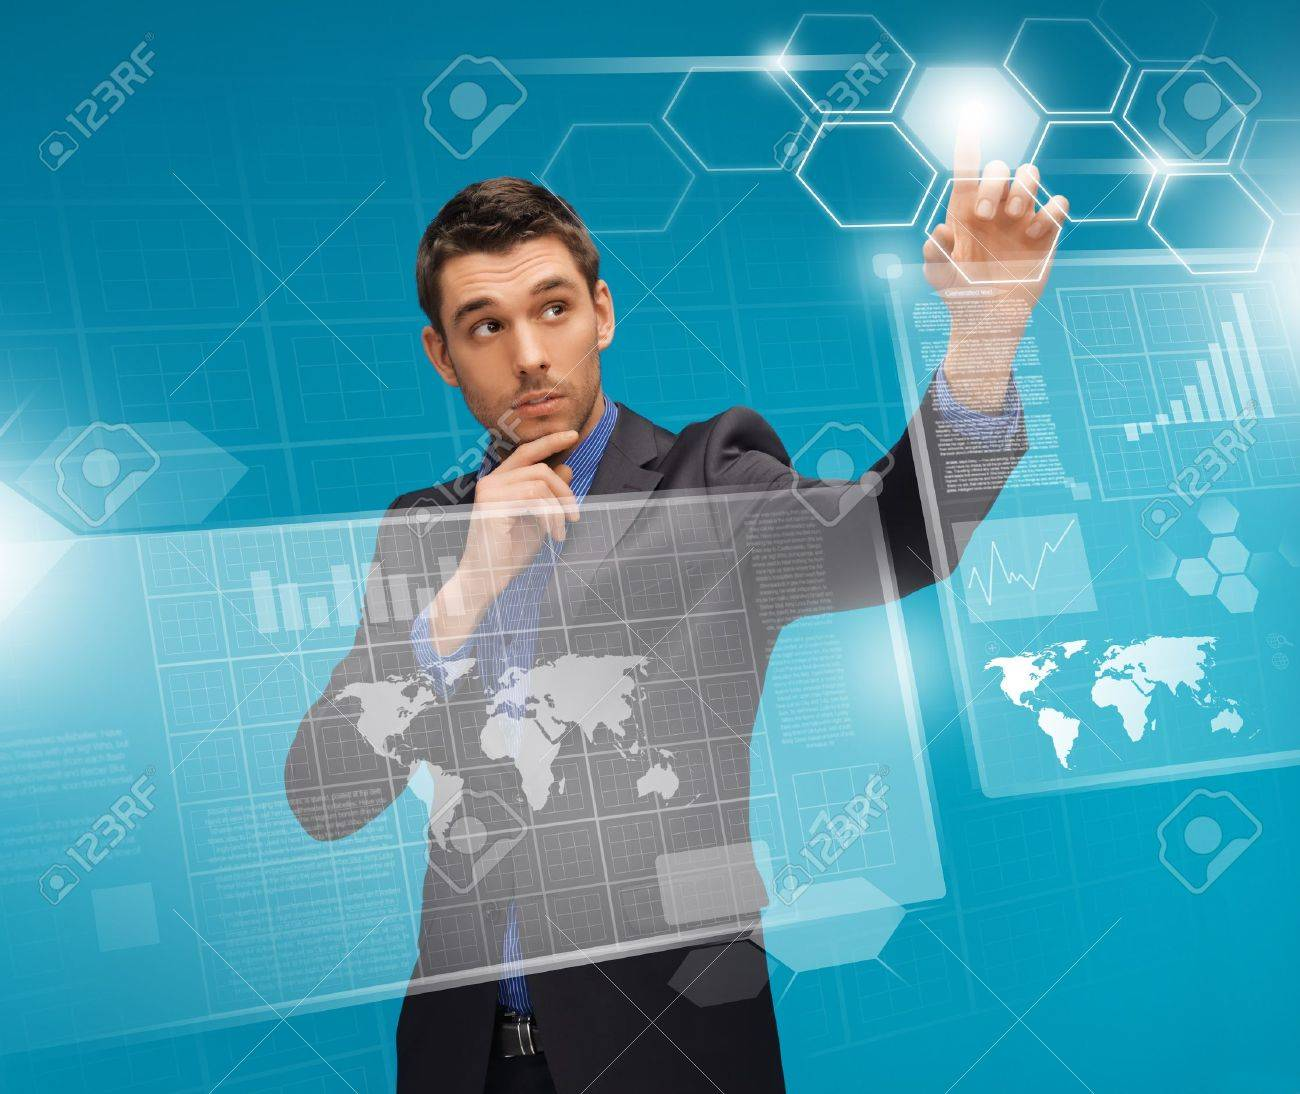 picture of man in suit working with virtual screens Stock Photo - 17038950